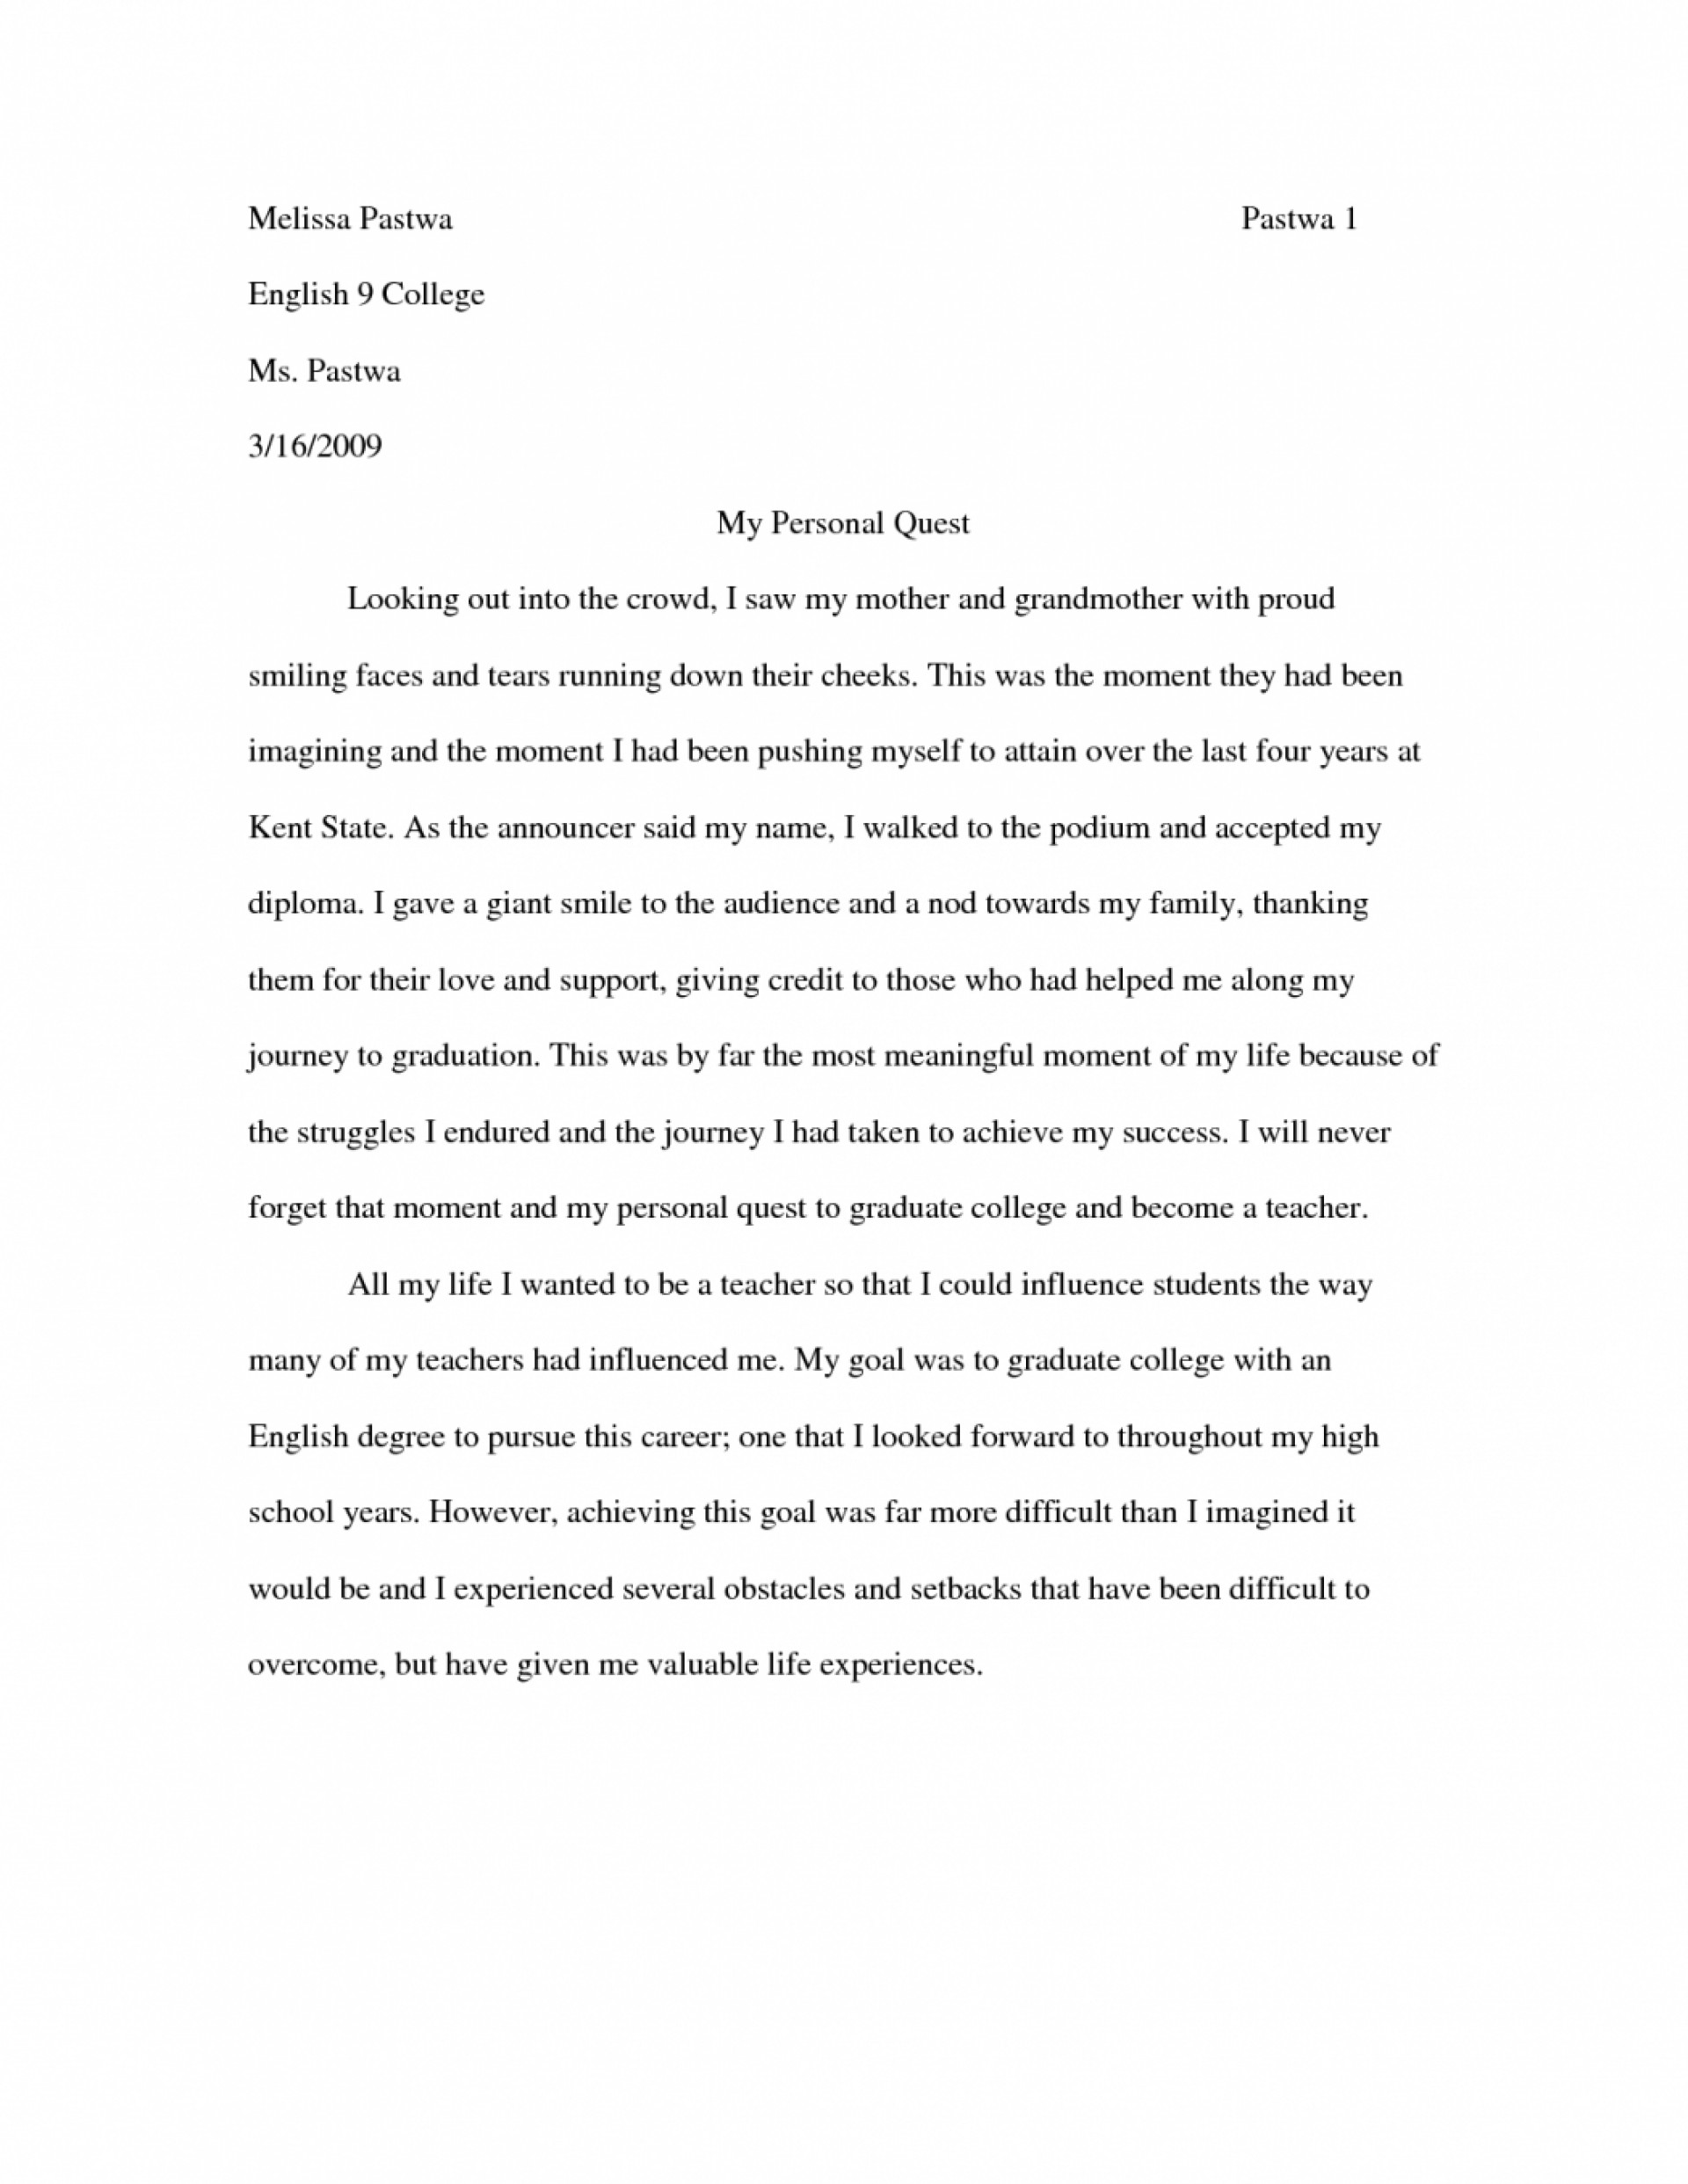 015 Read My Essay Sample Of College Goal Blockety Co Application Exam Who Should Someone 1048x1356 Unusual Reddit For Free Online 1920